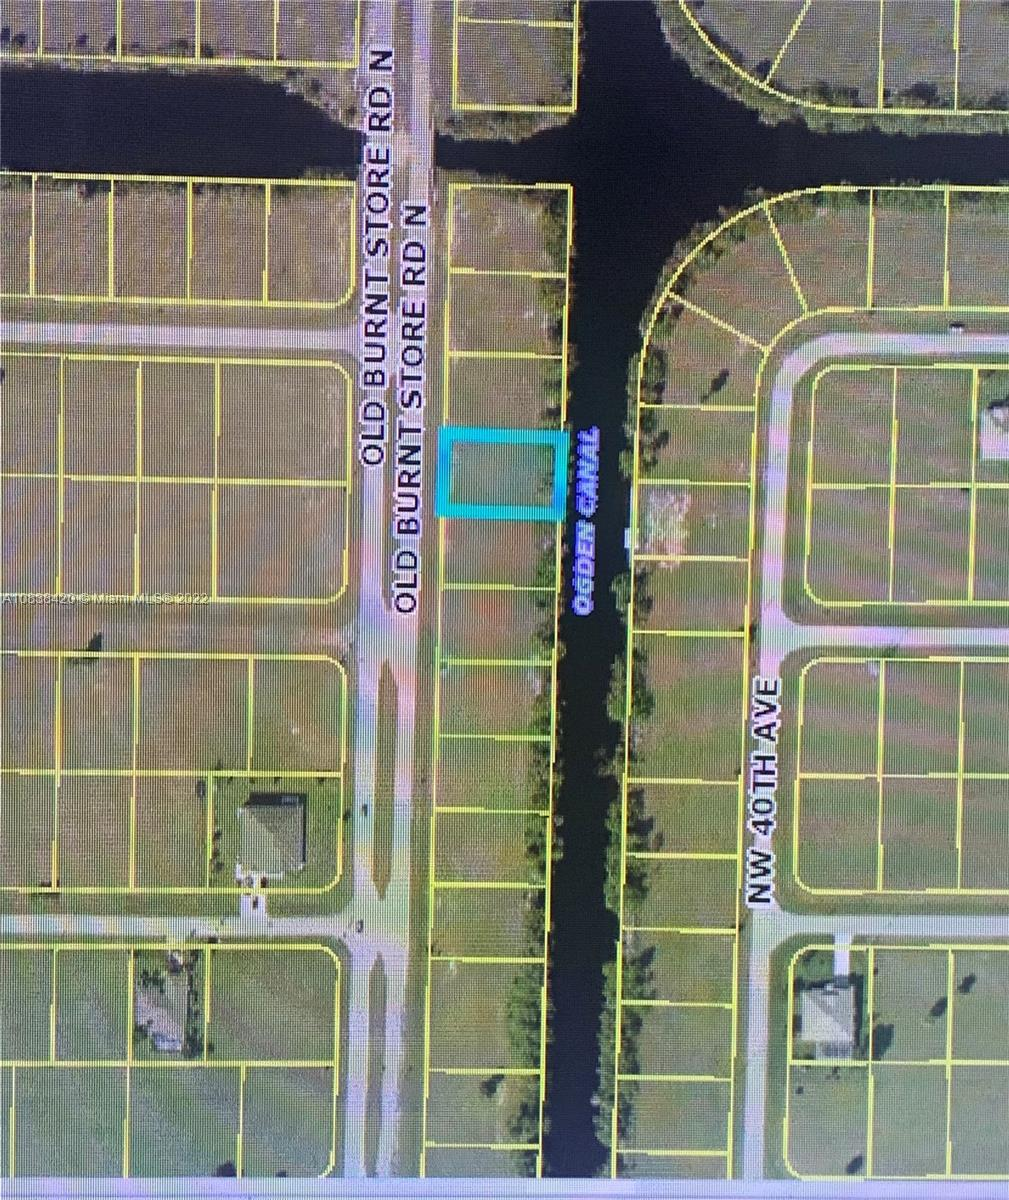 3839 Old Burnt Store Rd, Cape Coral, FL 33993